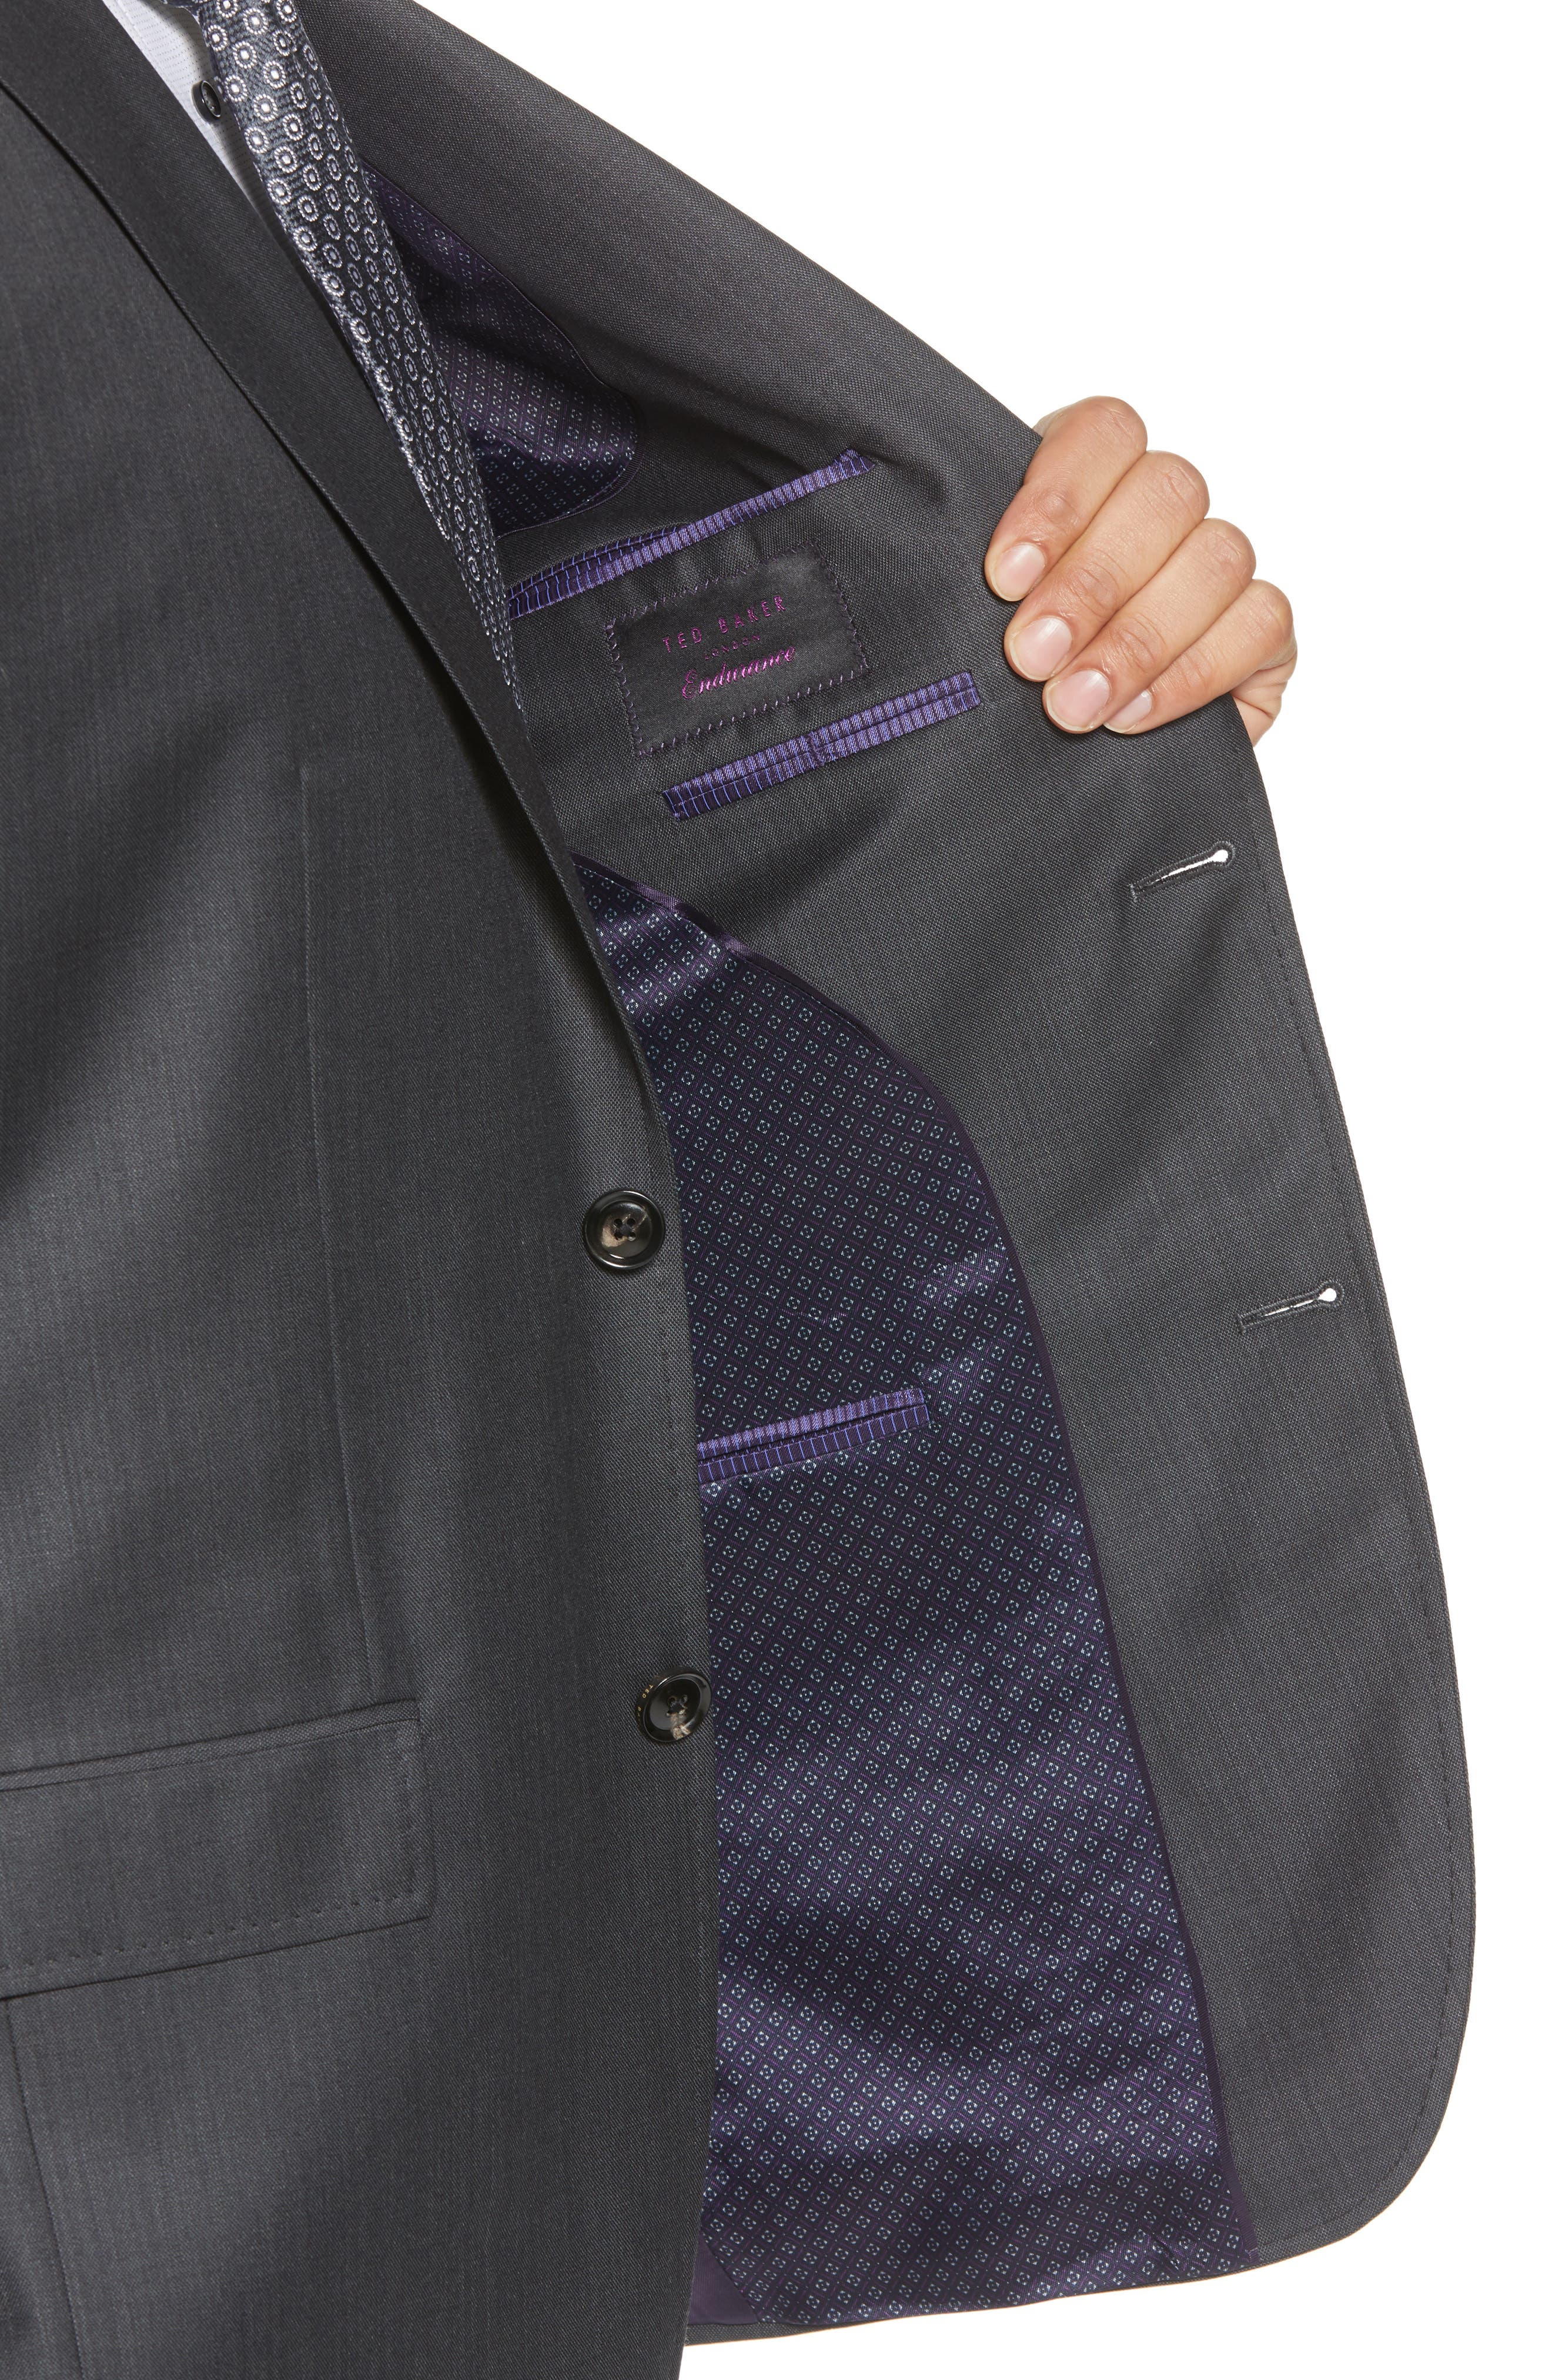 TED BAKER LONDON, ay' Trim Fit Solid Wool Suit, Alternate thumbnail 4, color, CHARCOAL